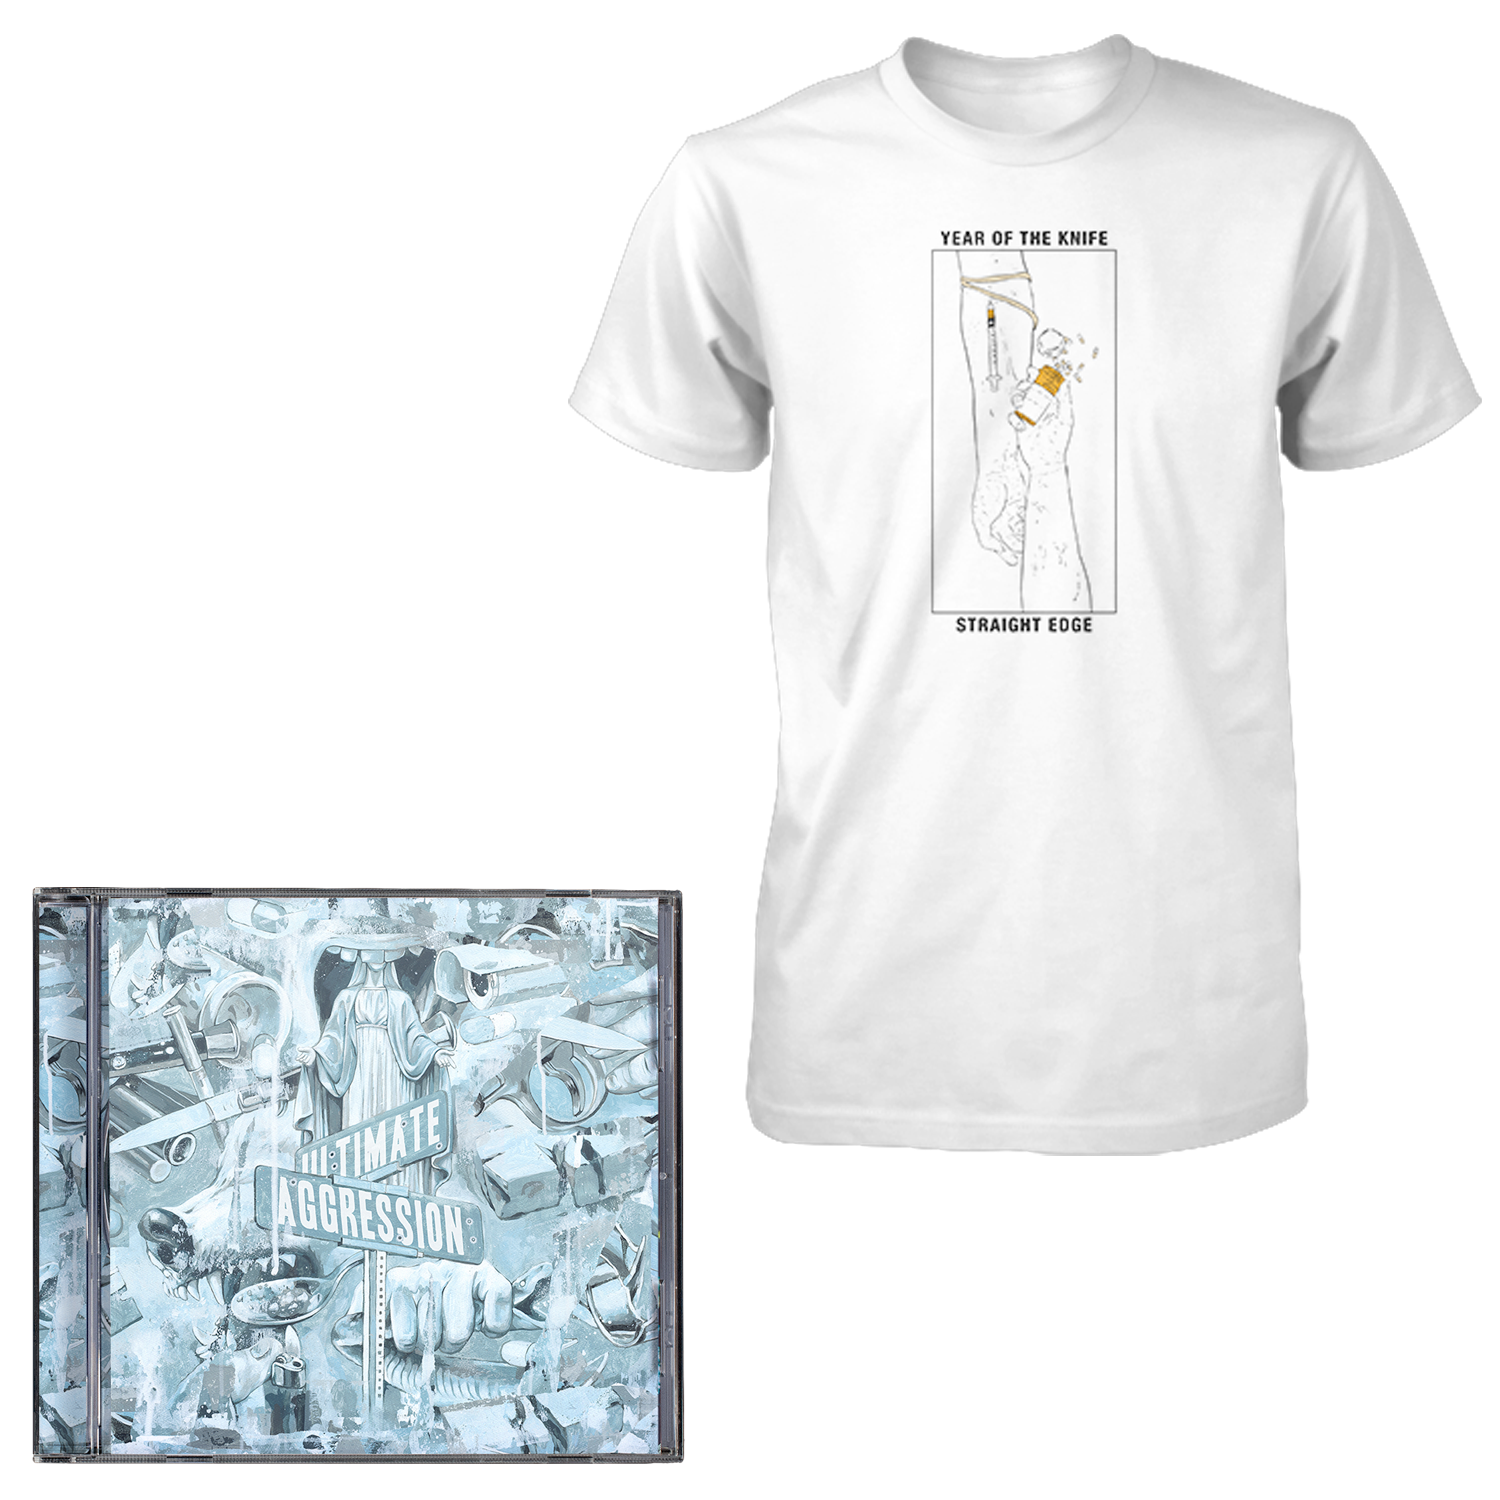 Year of the Knife 'Ultimate Aggression' CD + T-Shirt